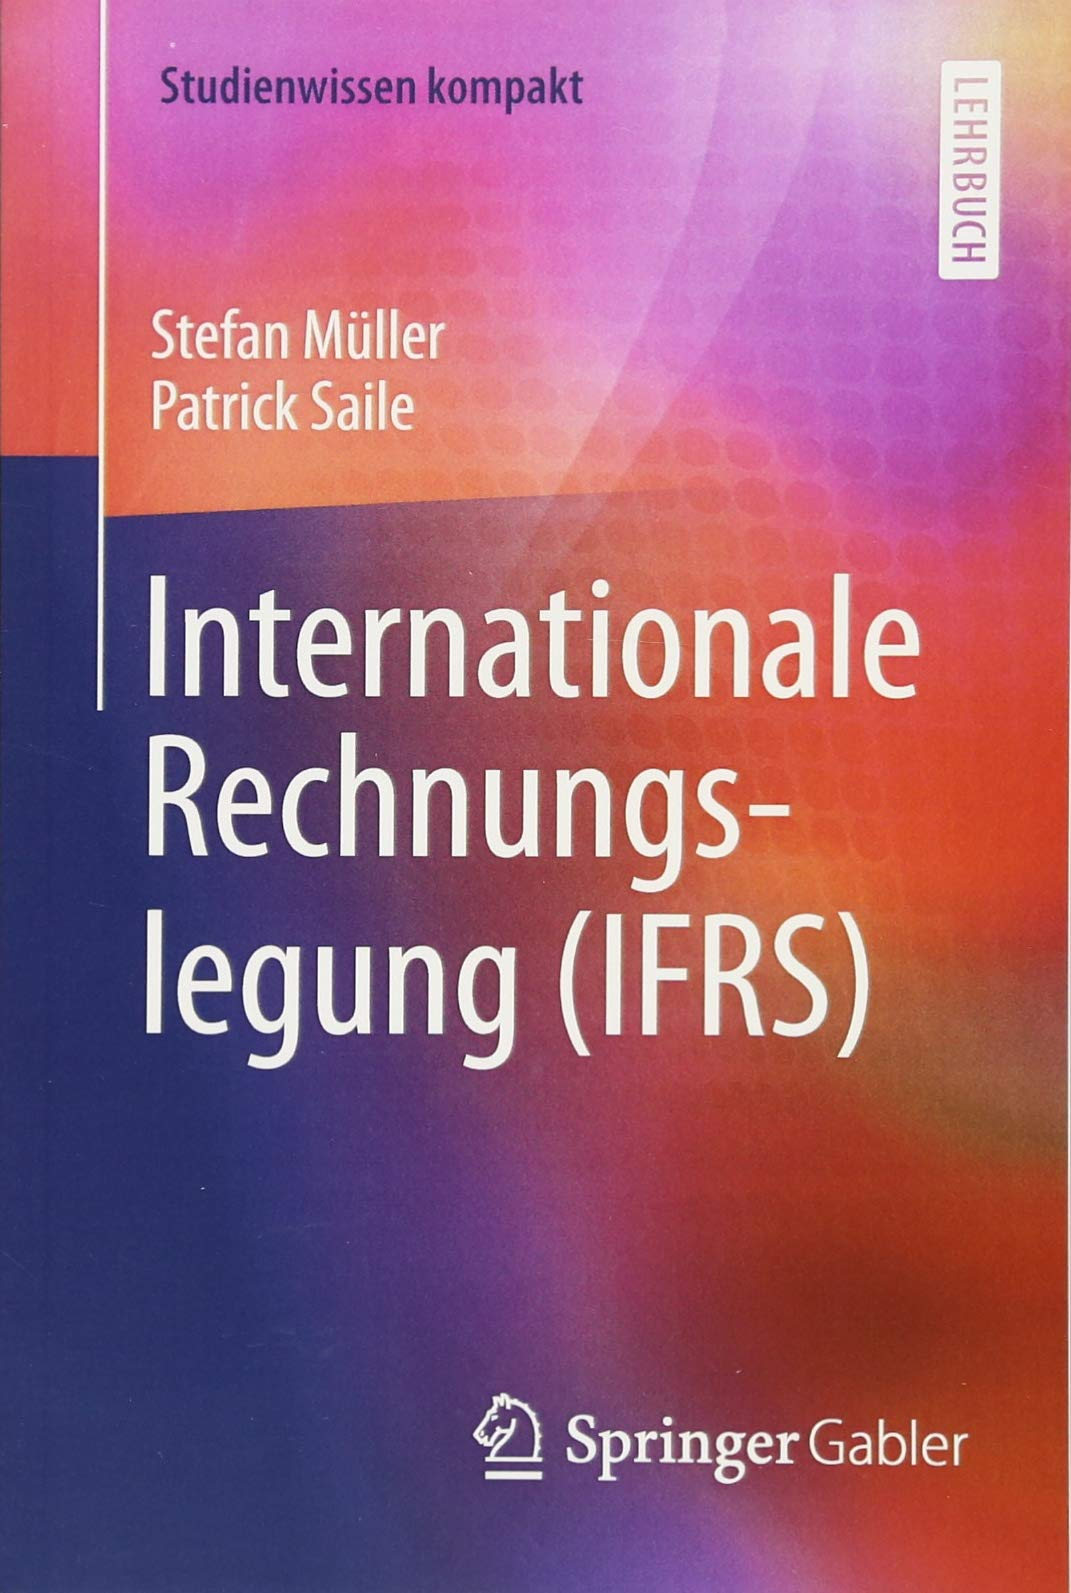 Internationale Rechnungslegung (IFRS) (Studienwissen kompakt)